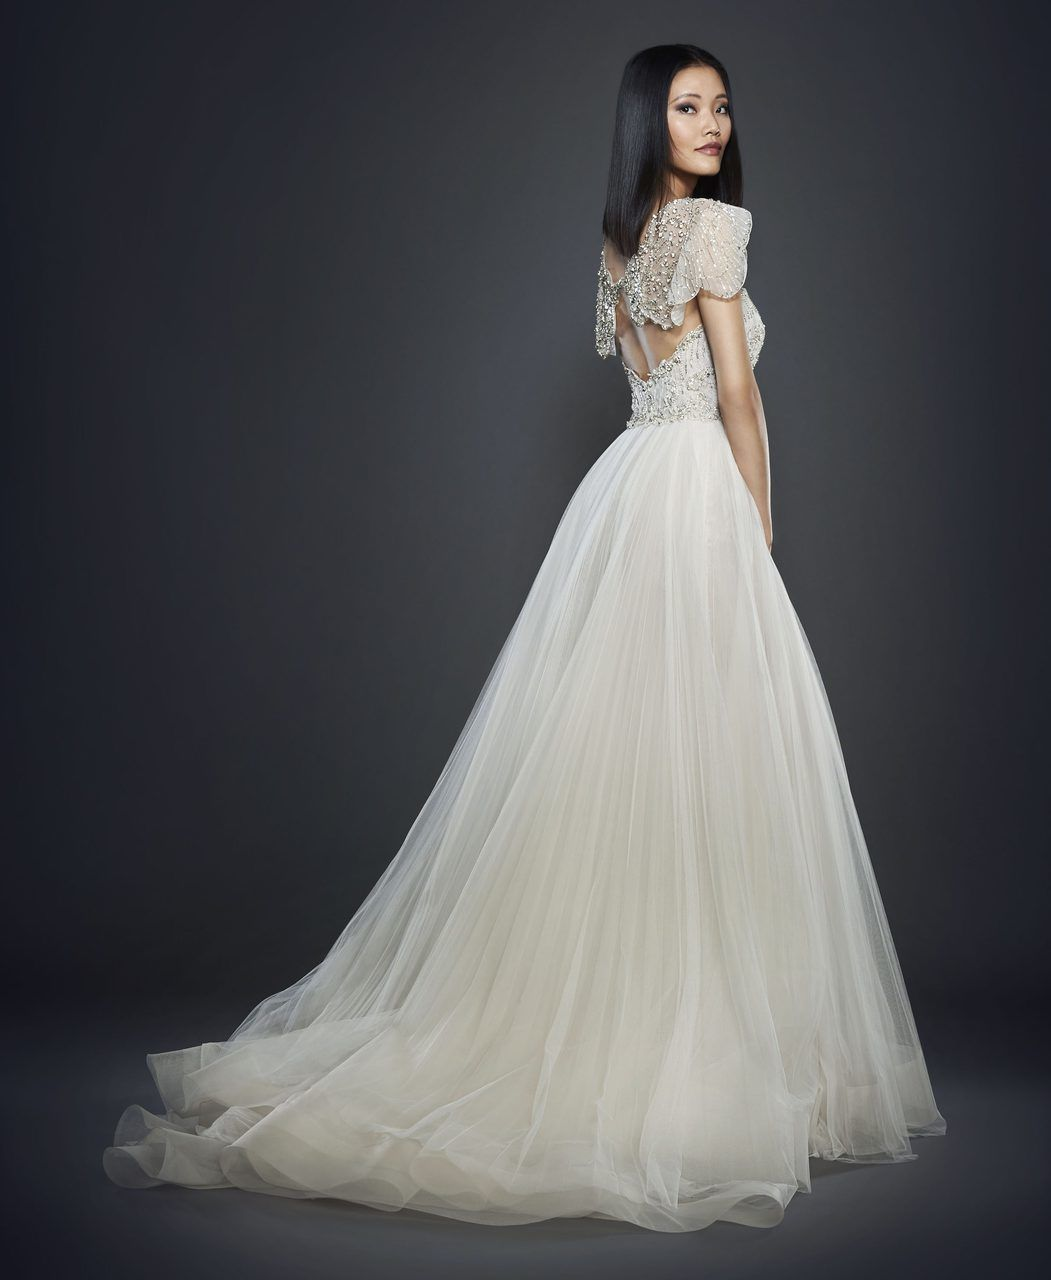 Bridals by lori lazaro call store for details